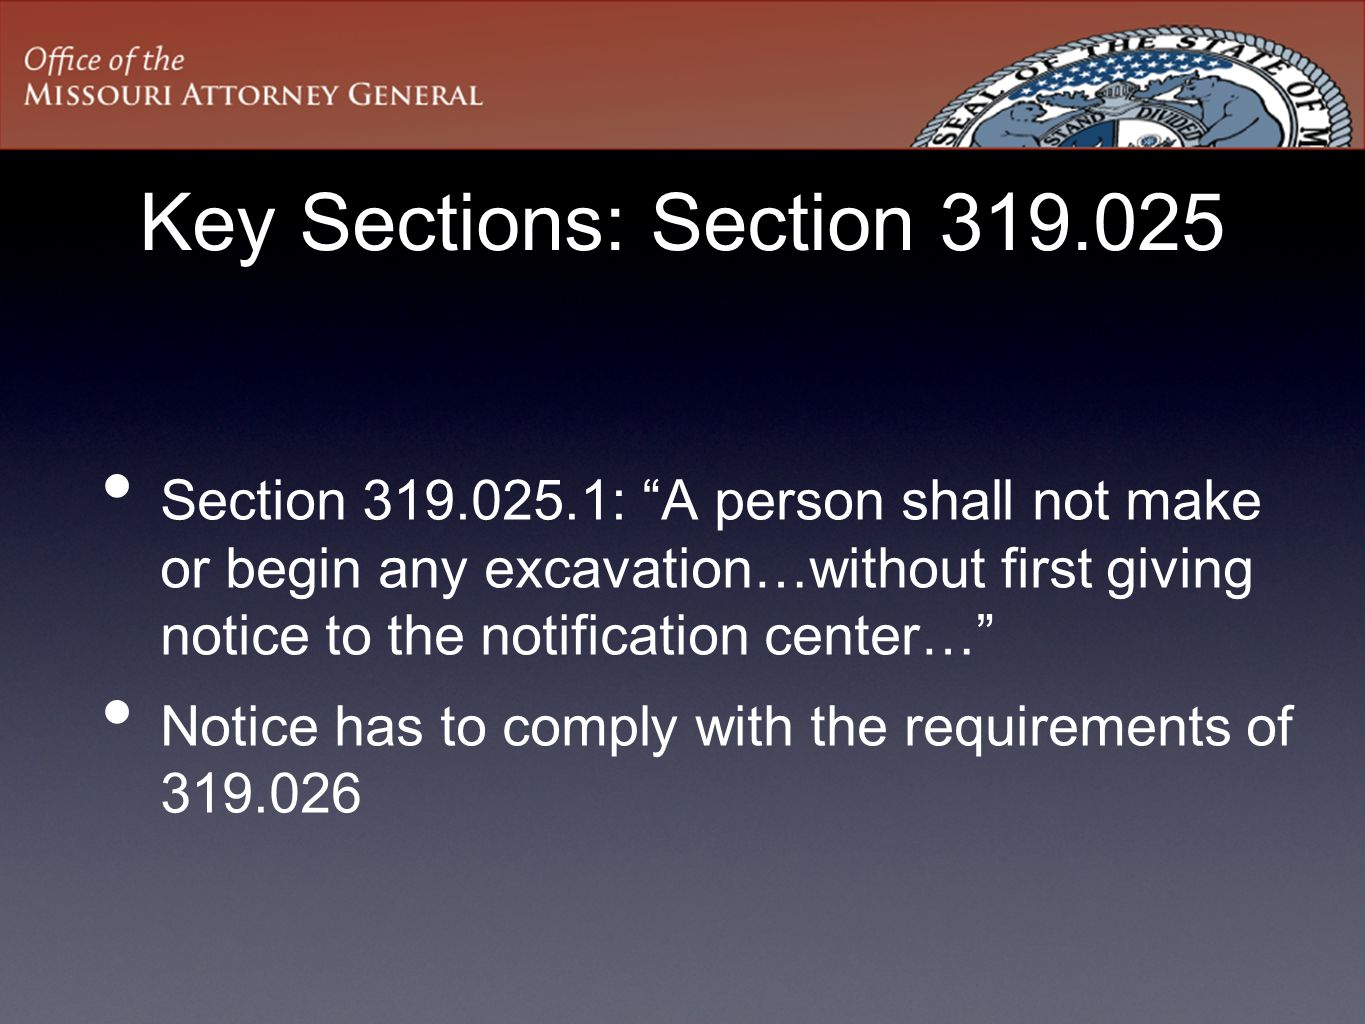 Key Sections: Section 319.025